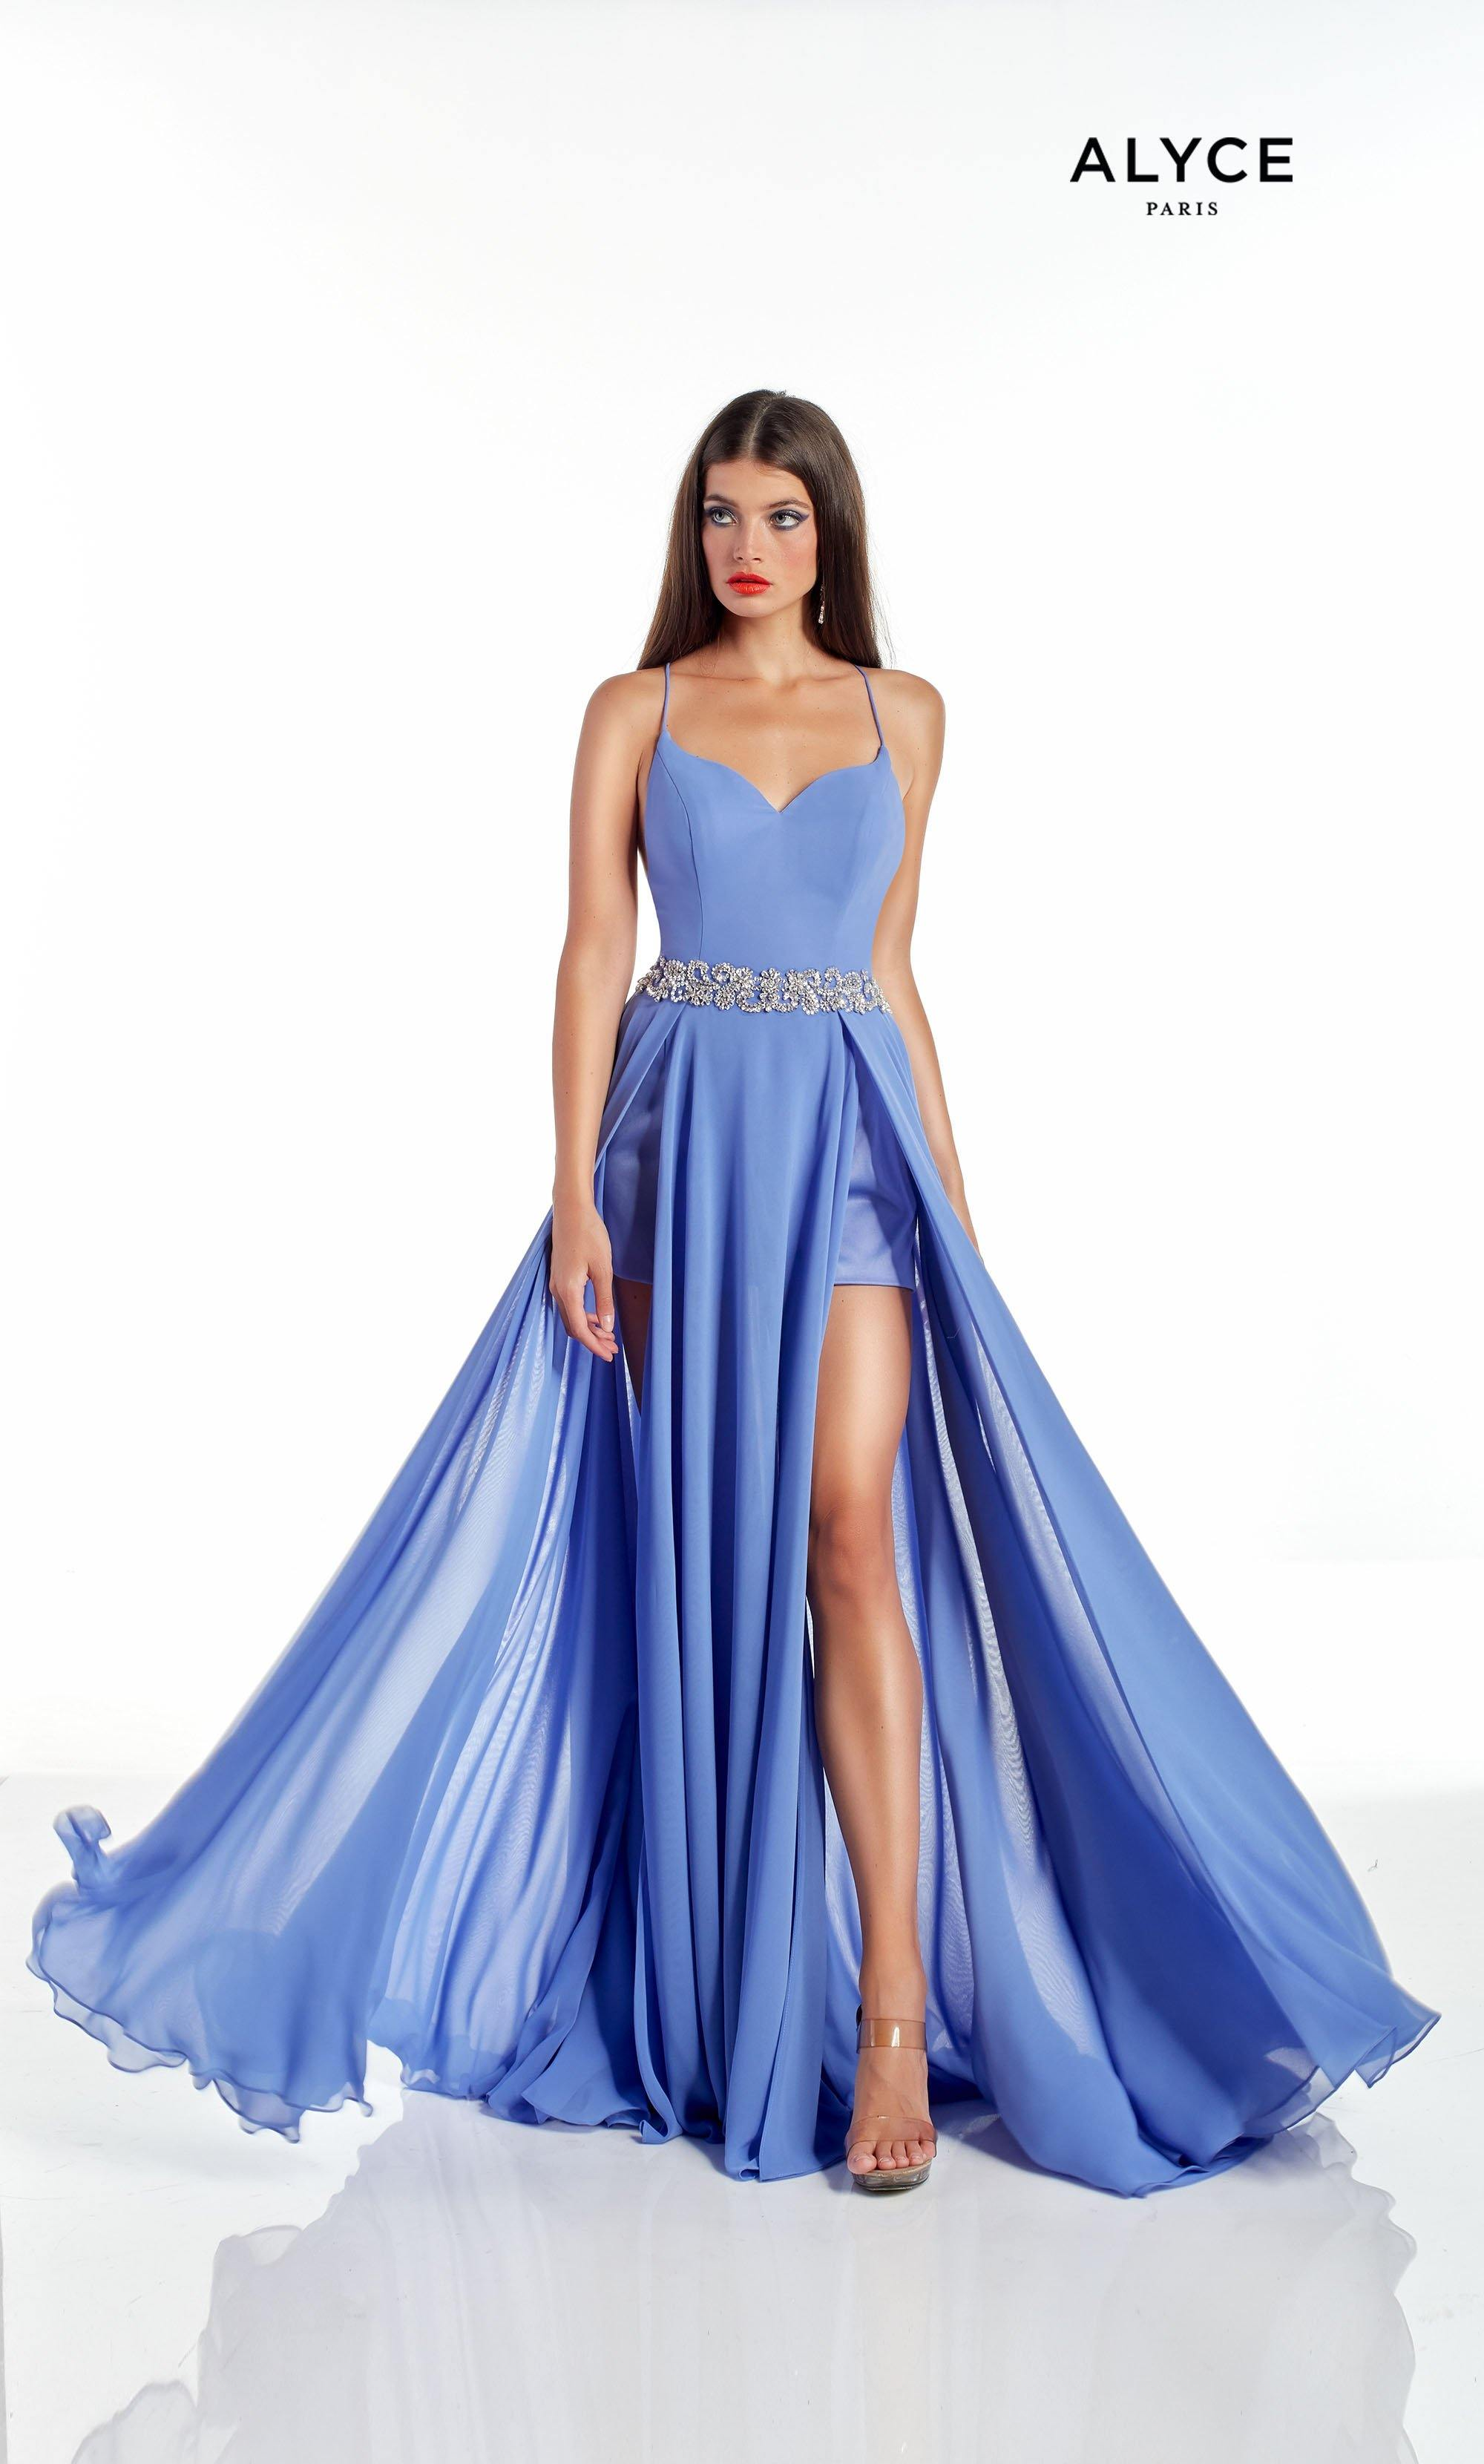 Iris blue flowy chiffon romper dress with a sweetheart neckline, bejeweled natural waist, and front slits